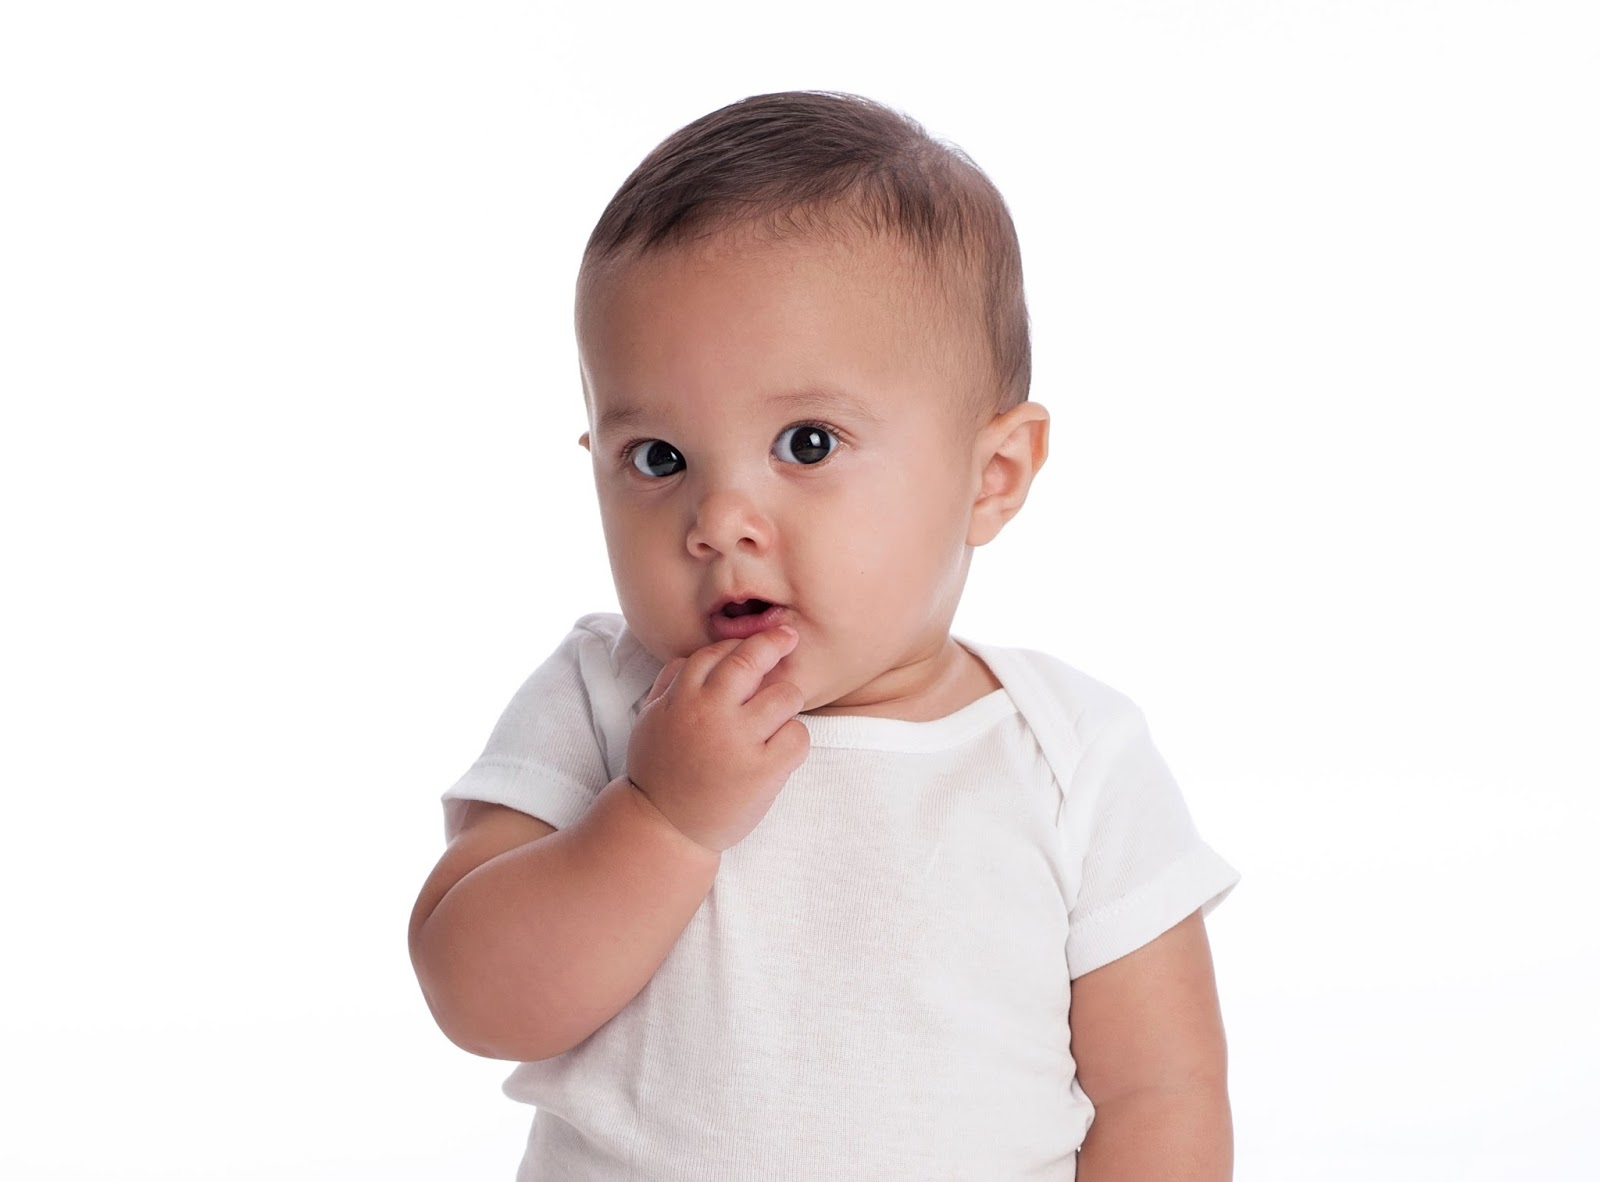 esciencecommons: babies have logical reasoning before age one, study